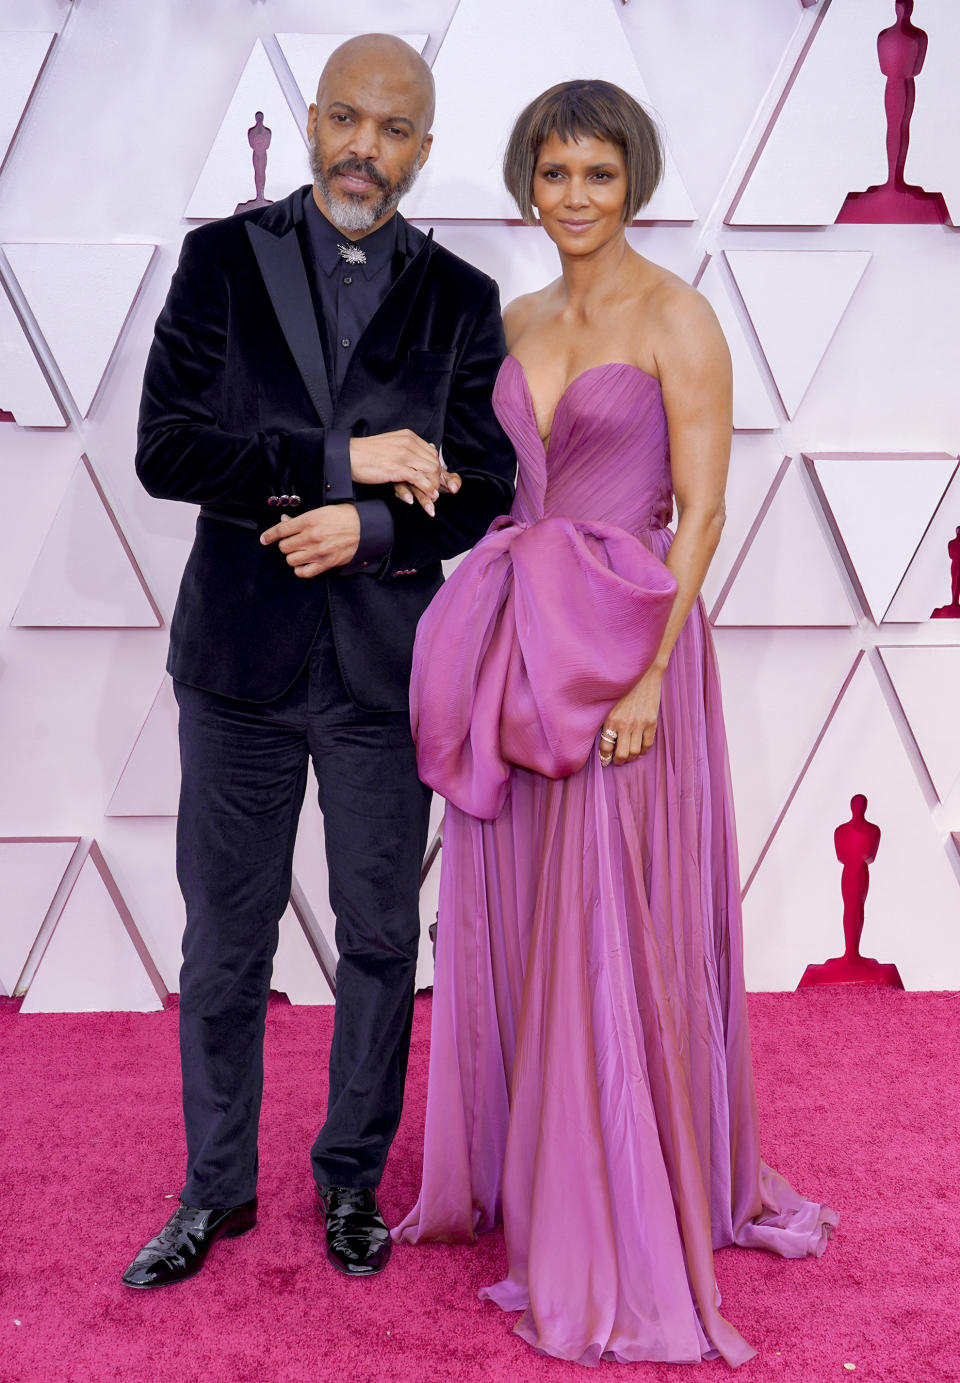 Halle Berry and boyfriend Van Hunt at the 93rd Annual Academy Awards. (AP Photo/Chris Pizzello, Pool)